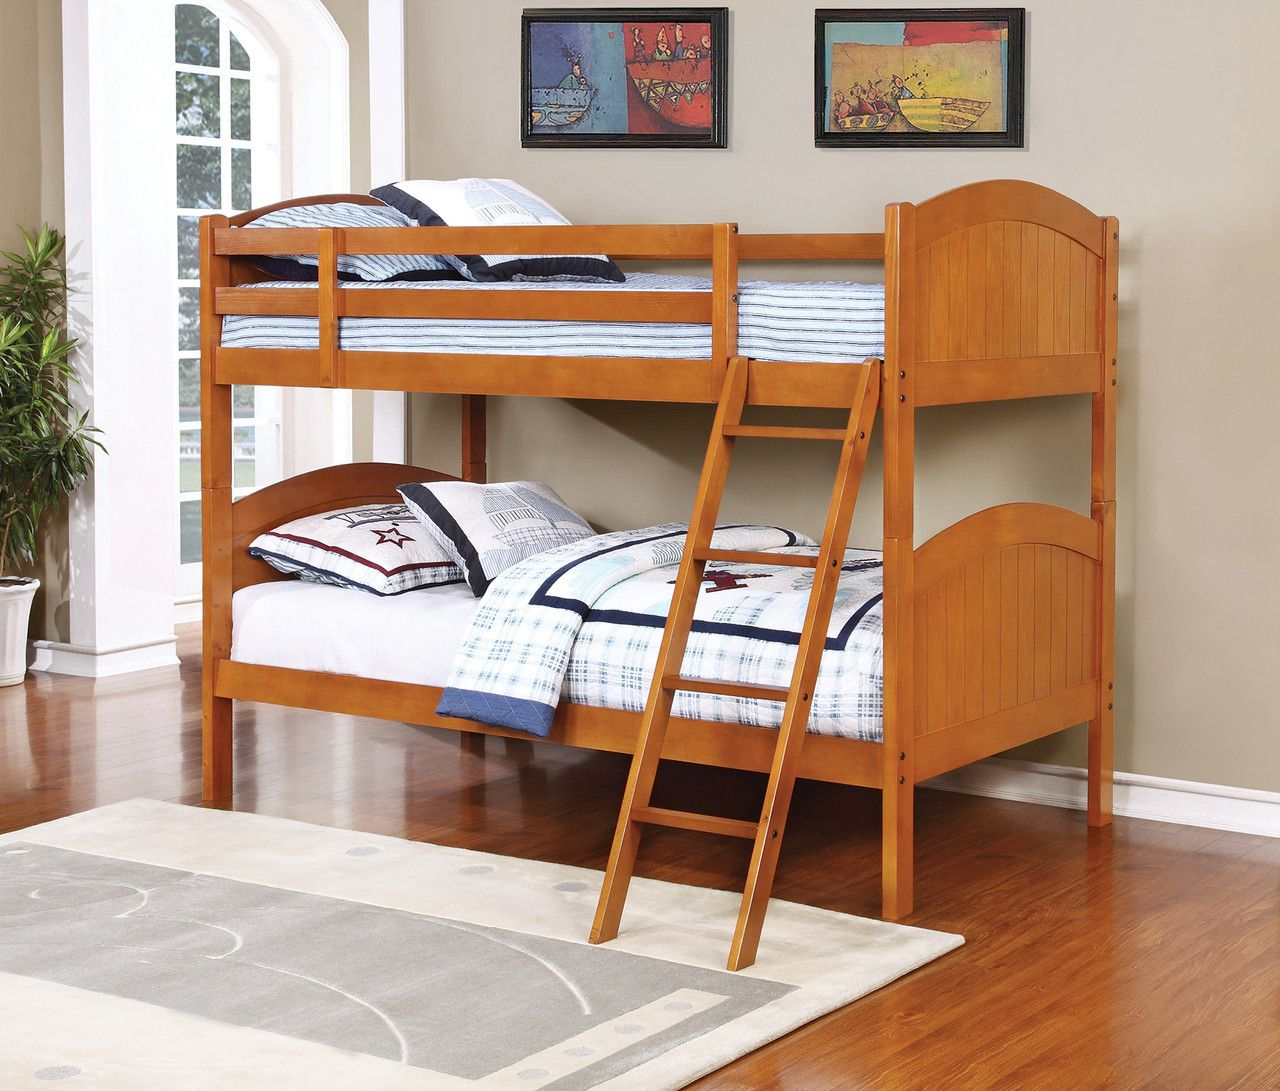 Twin loft bed dimensions  Bunks Twin Over Twin Bunk Bed    Description Bunk bed